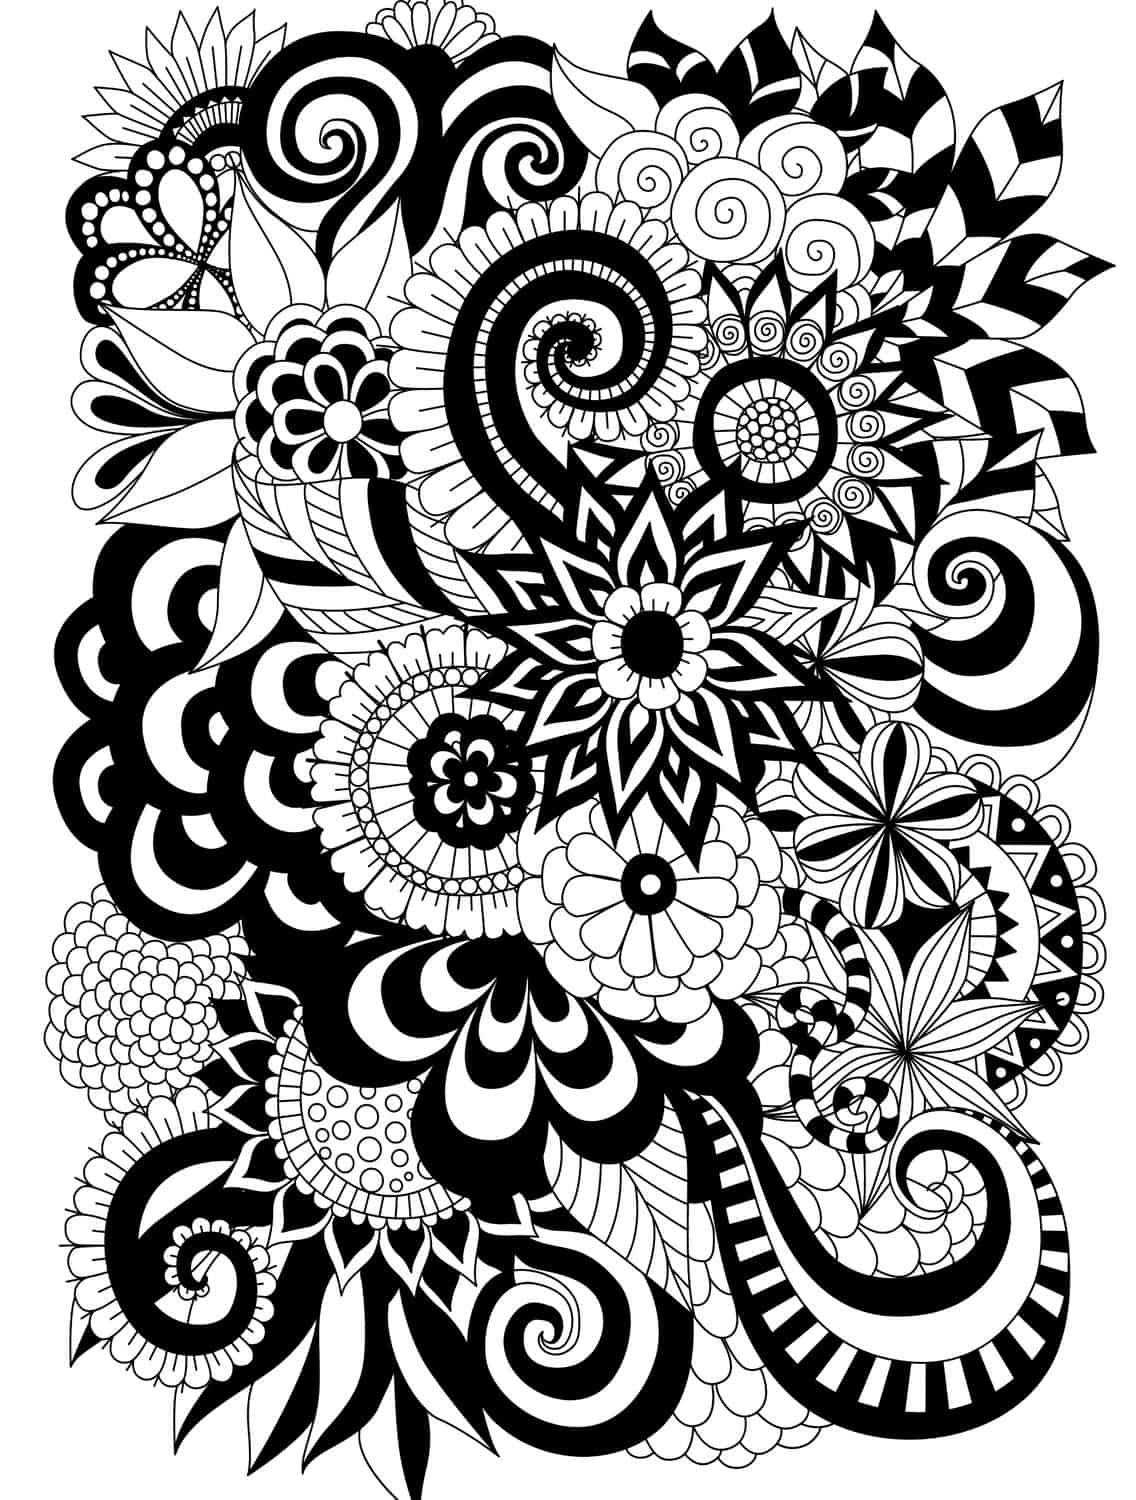 15 crazy busy coloring pages for adults page 8 of 16 Coloring book for adults free download